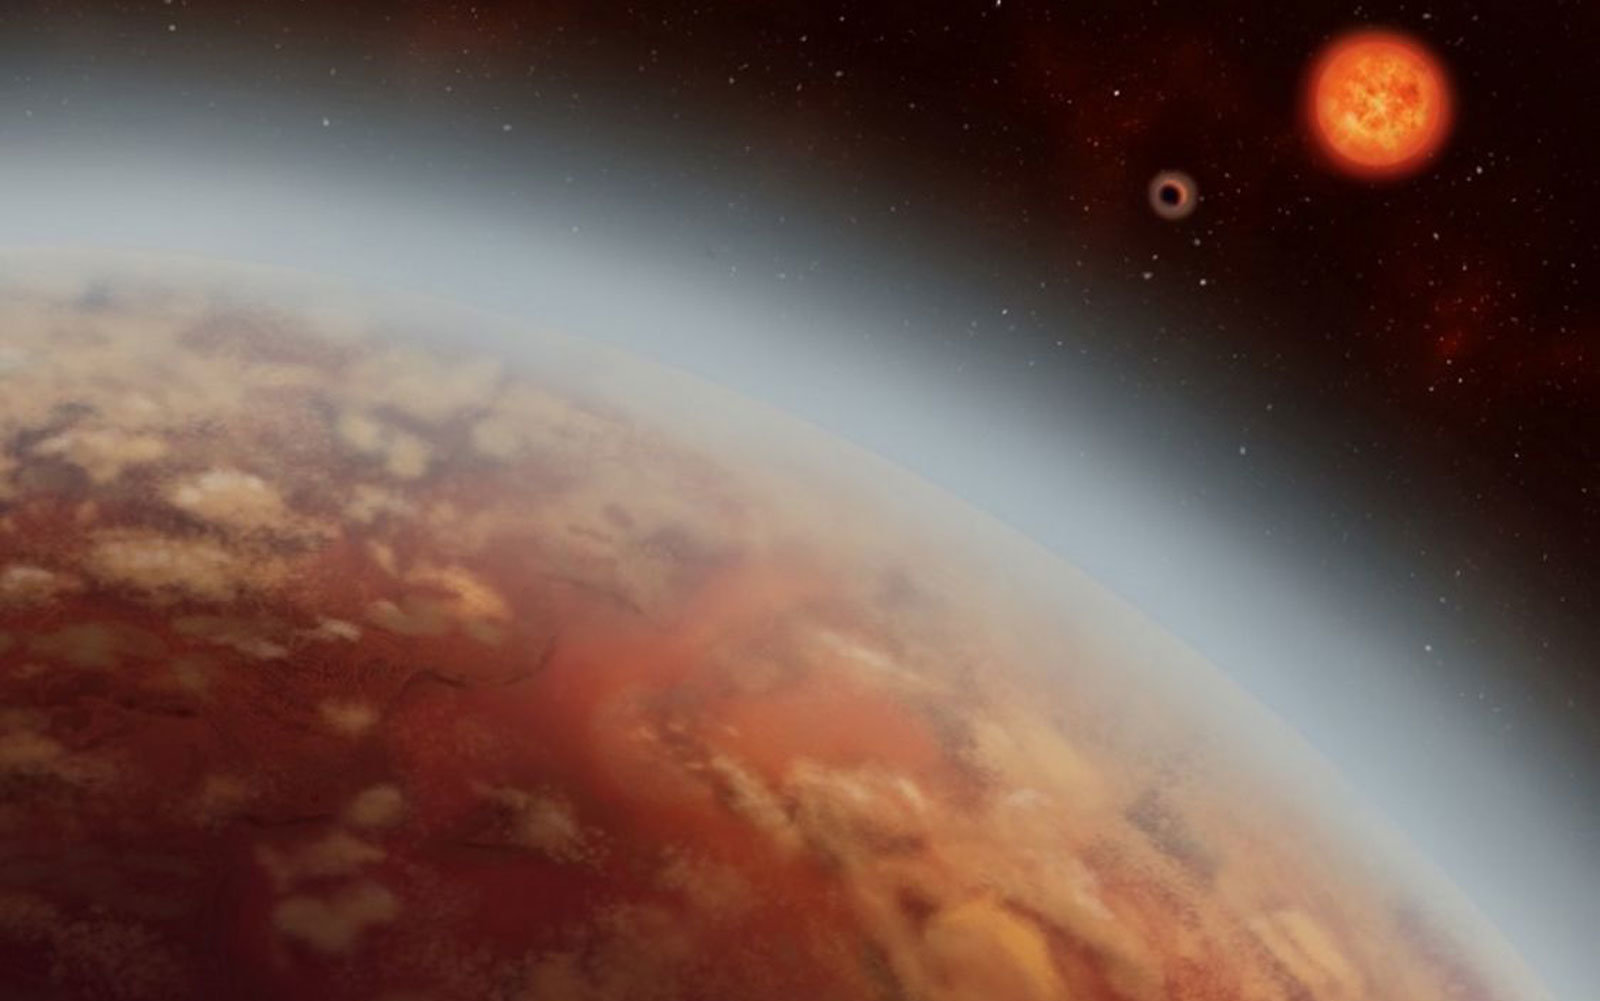 'Super-Earth' that may host life found